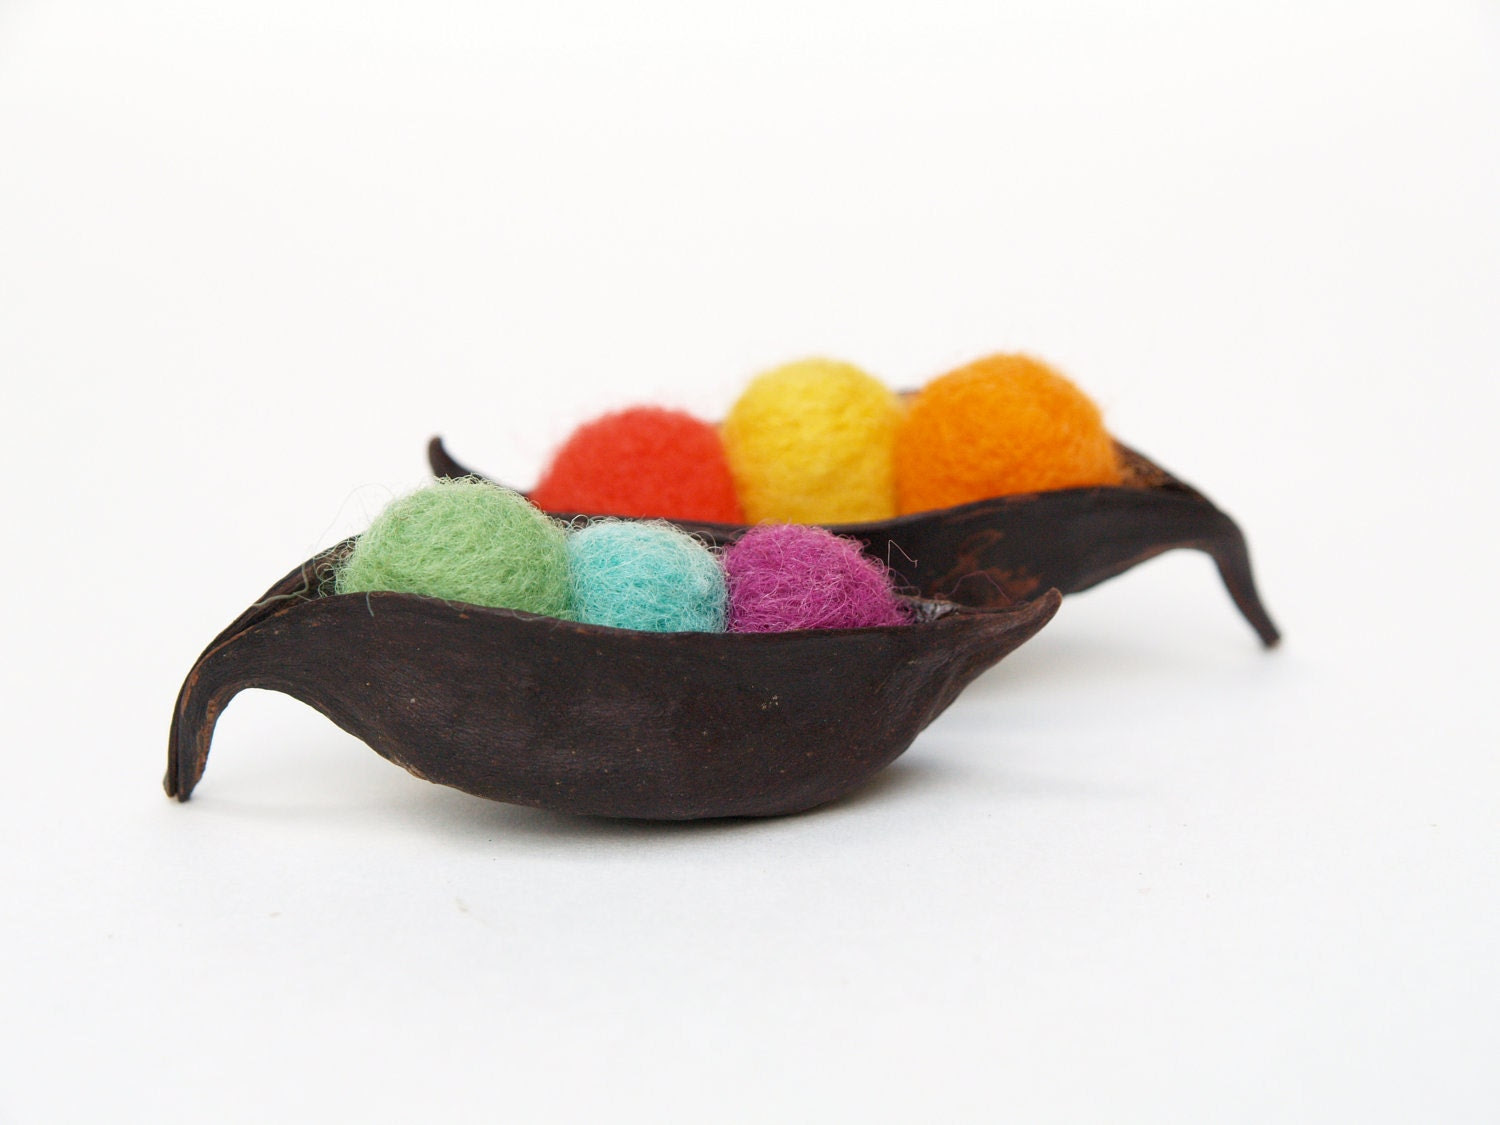 Rainbow Peas in a Pod, needle felted display, unique handmade wool garden home decor nature inspired fall autumn Christmas winter decorating